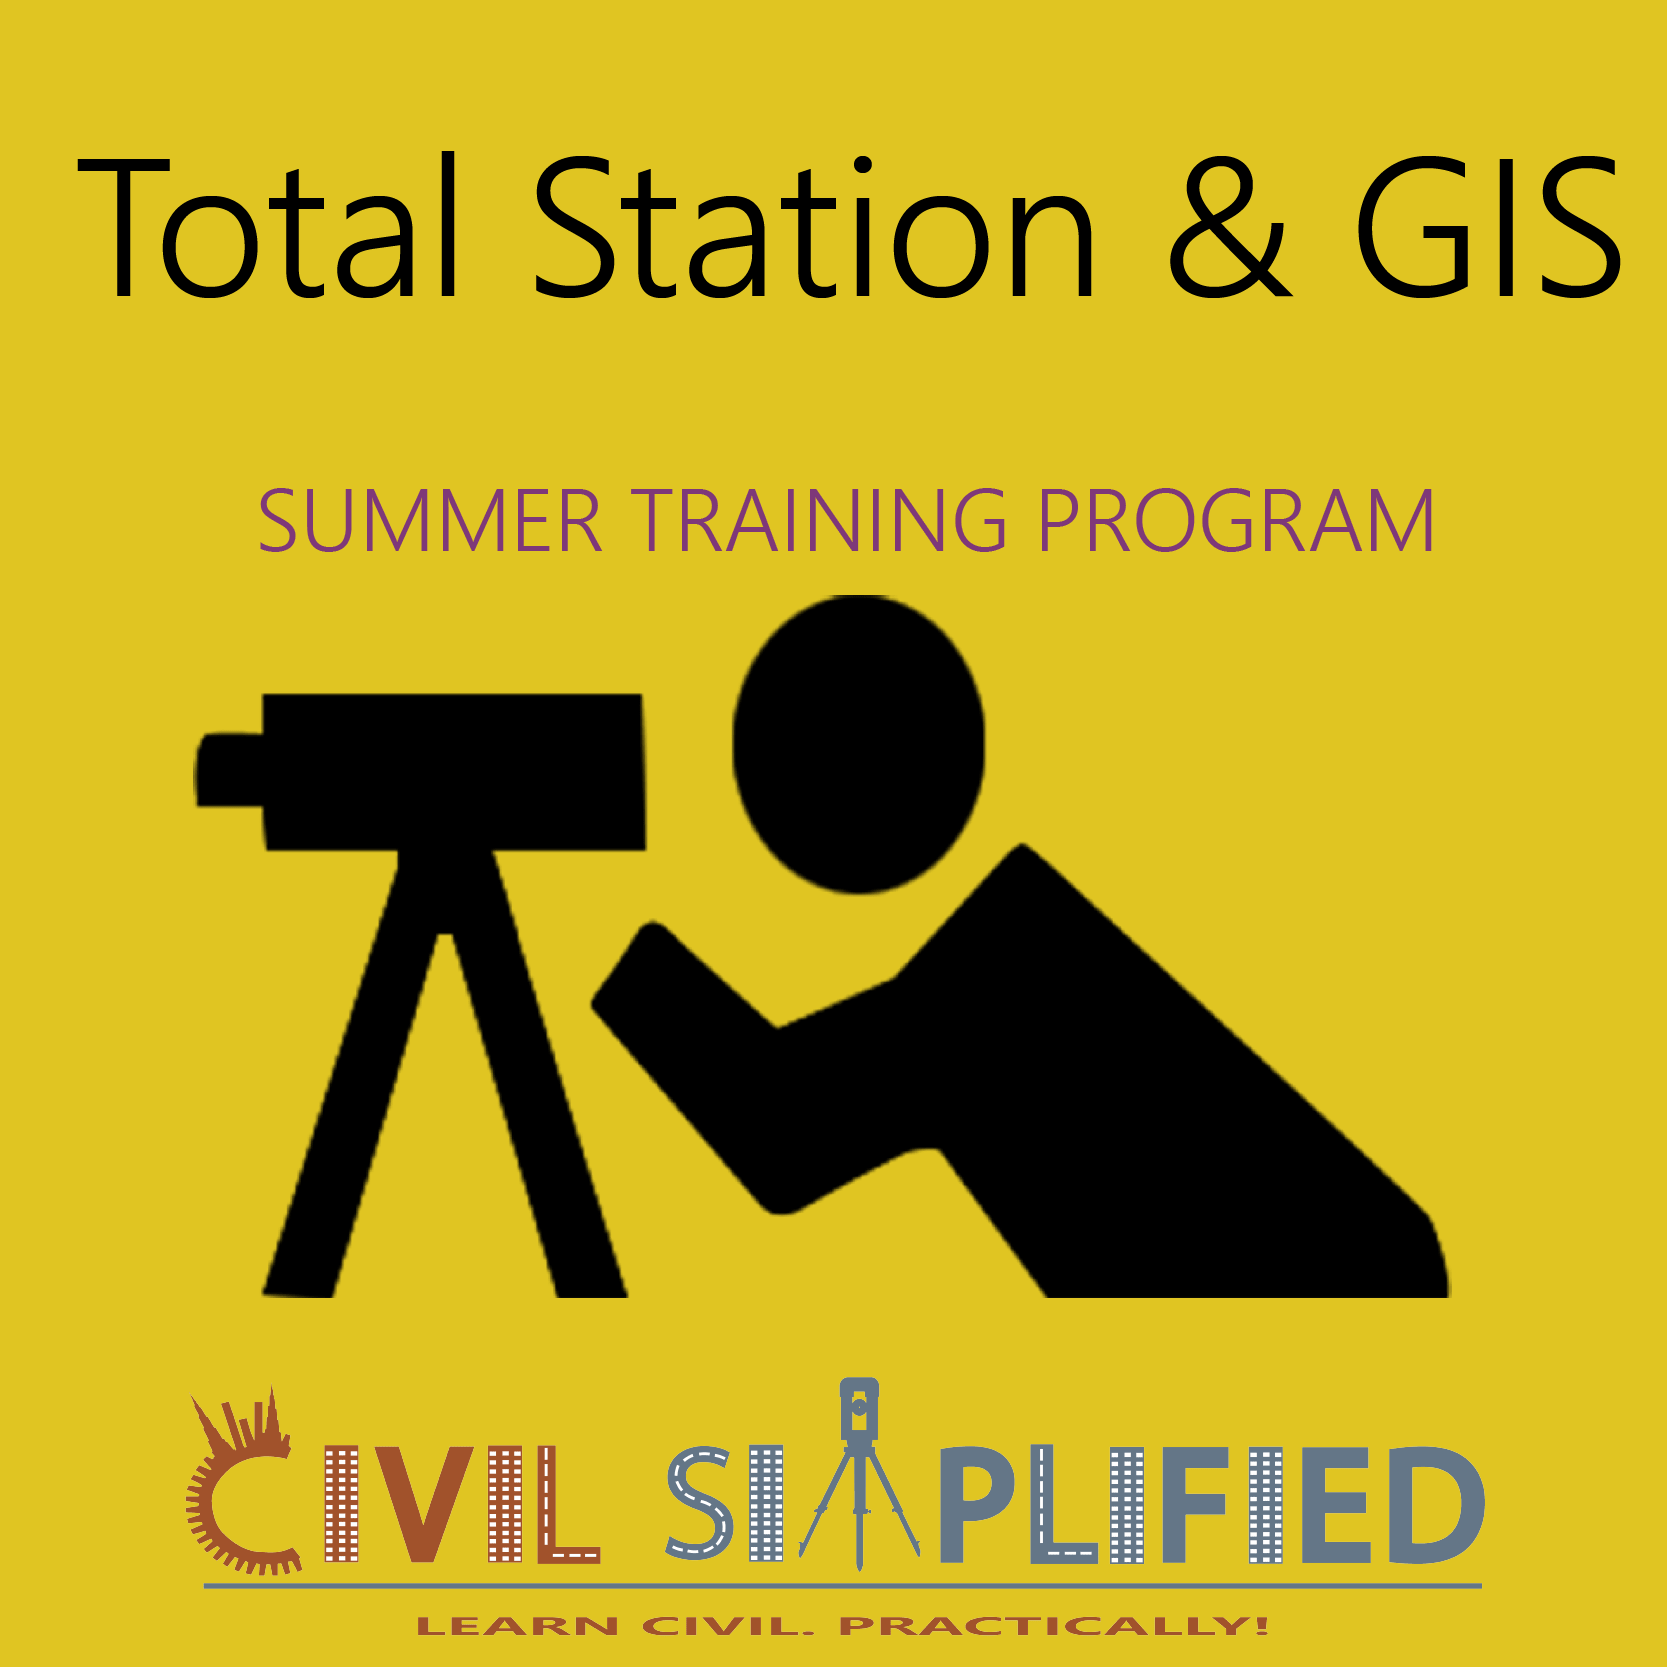 Summer Training Program in Civil Engineering - Total Station and GIS  at Skyfi Labs Center, Gateforum, Vishal Mega Mart, VIP Road Workshop